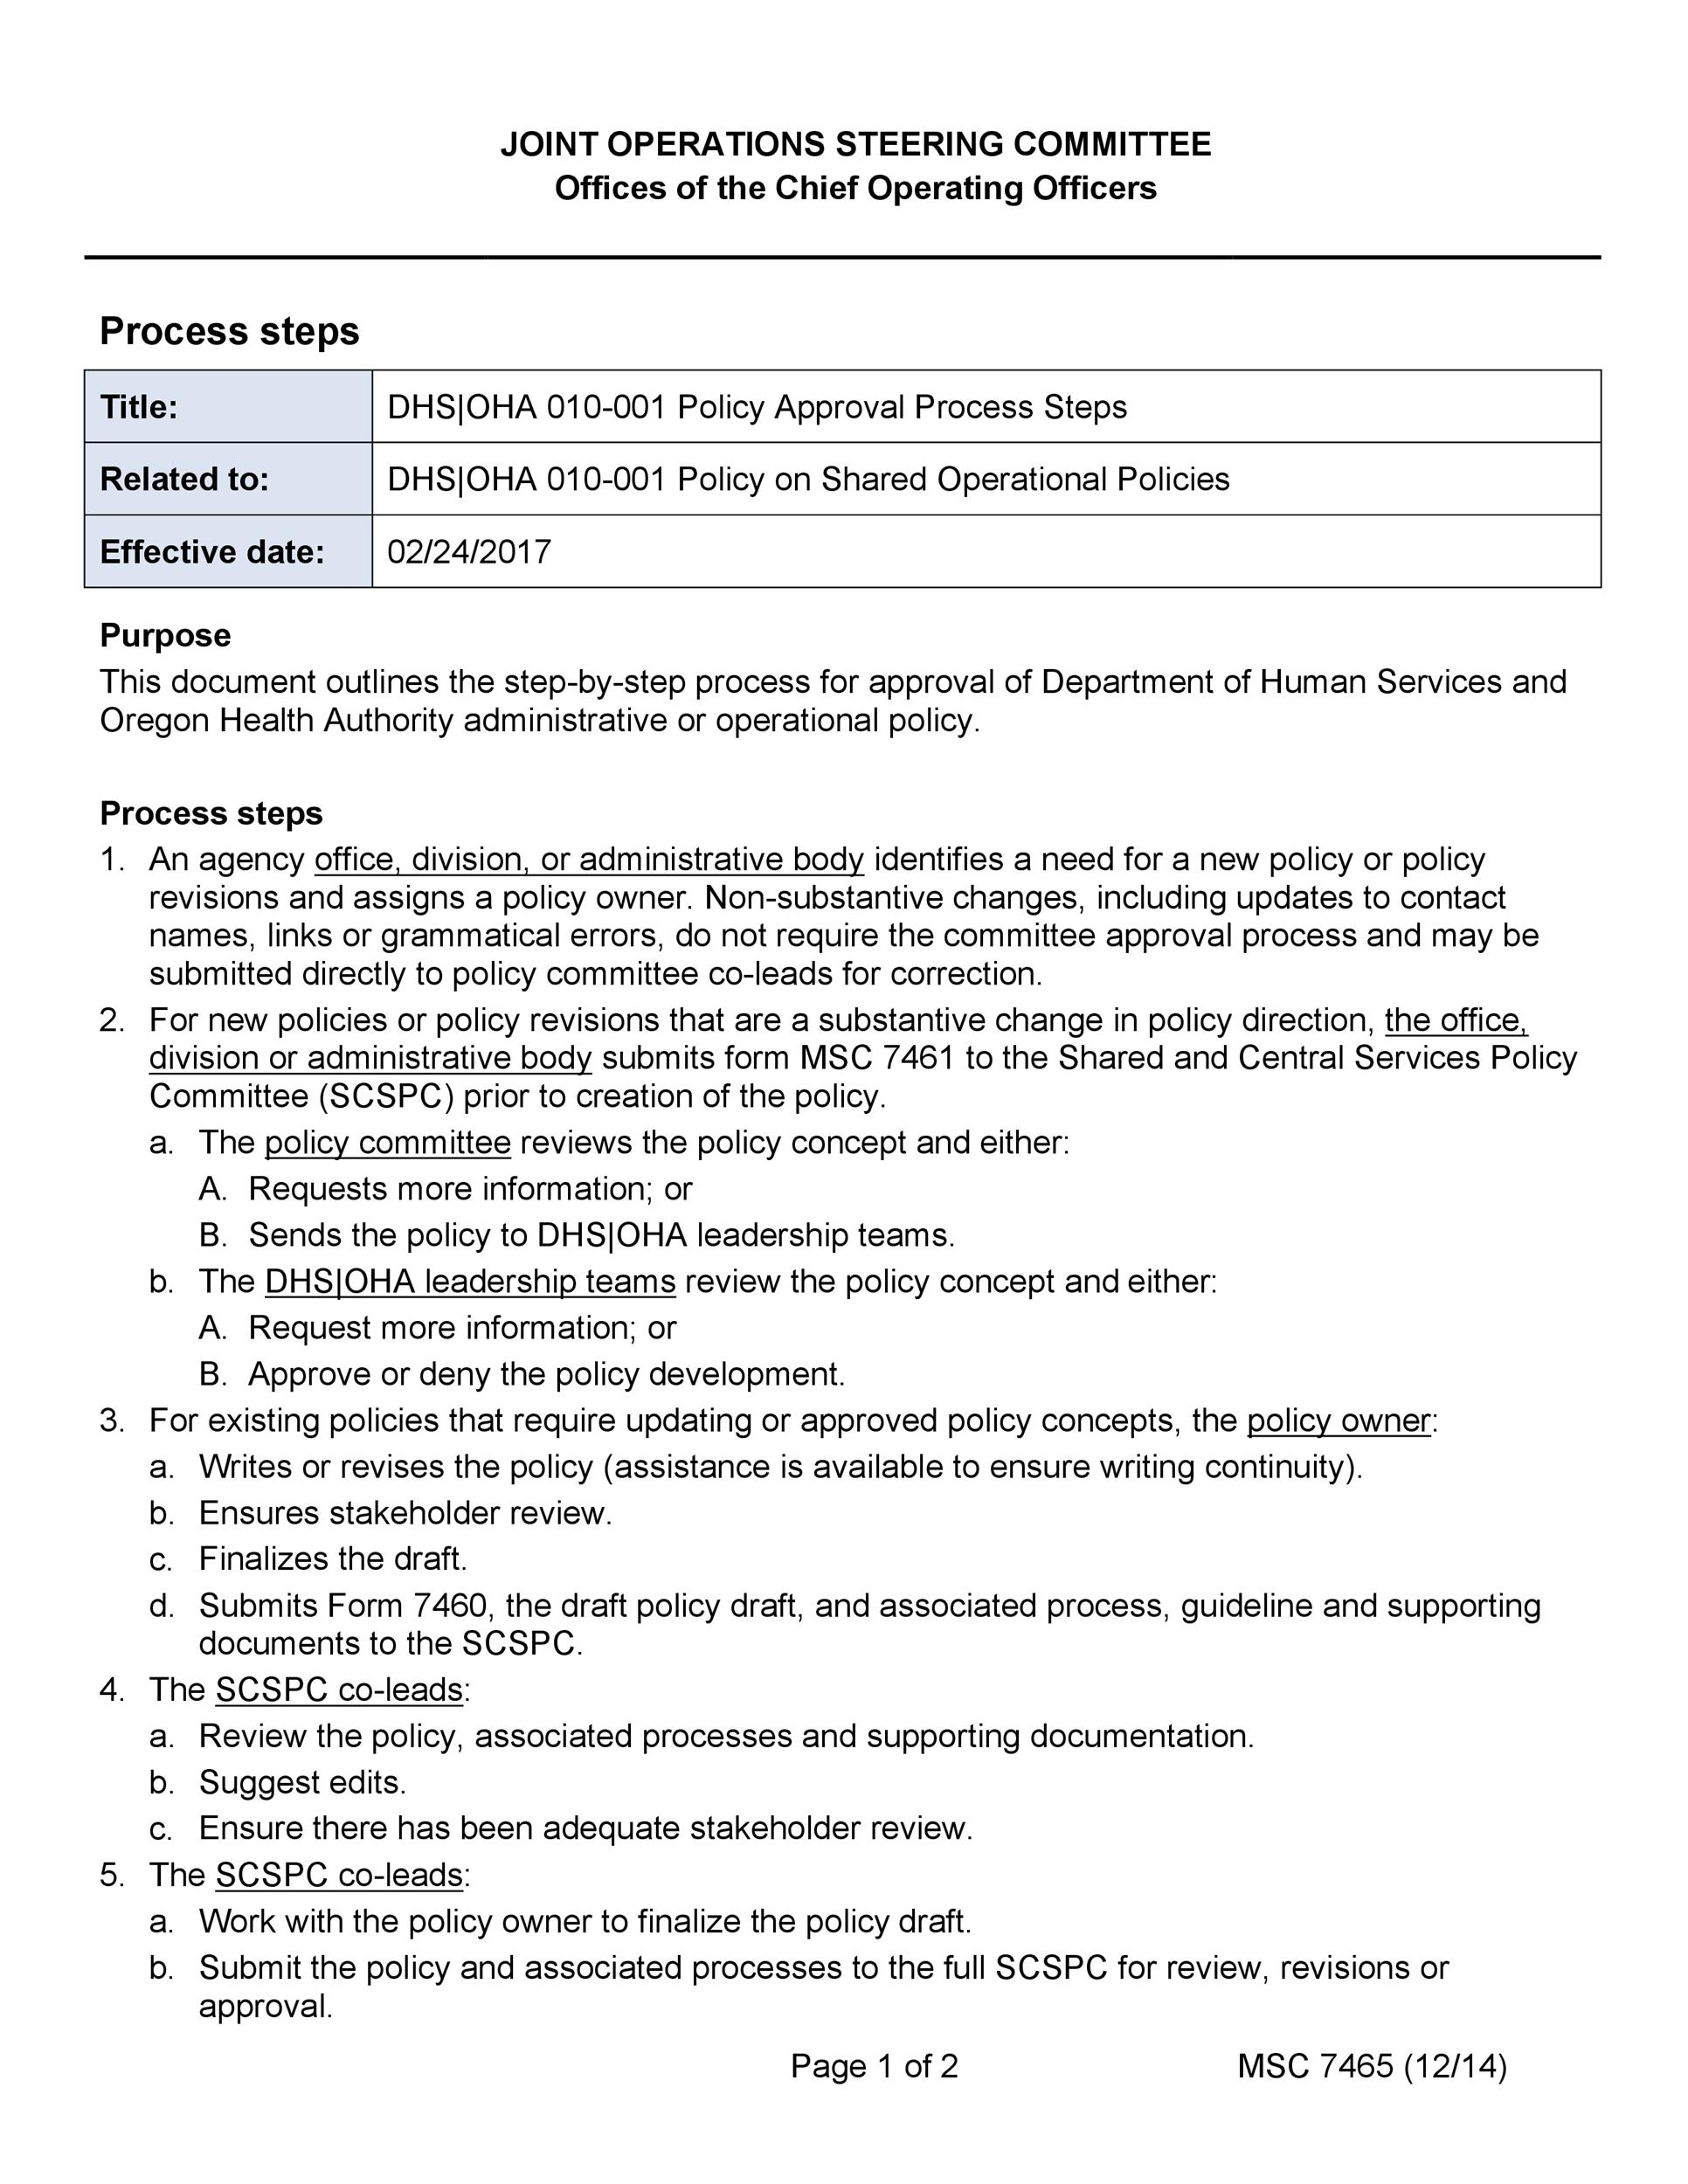 30 Professional Policy Proposal Templates [& Examples] ᐅ TemplateLab